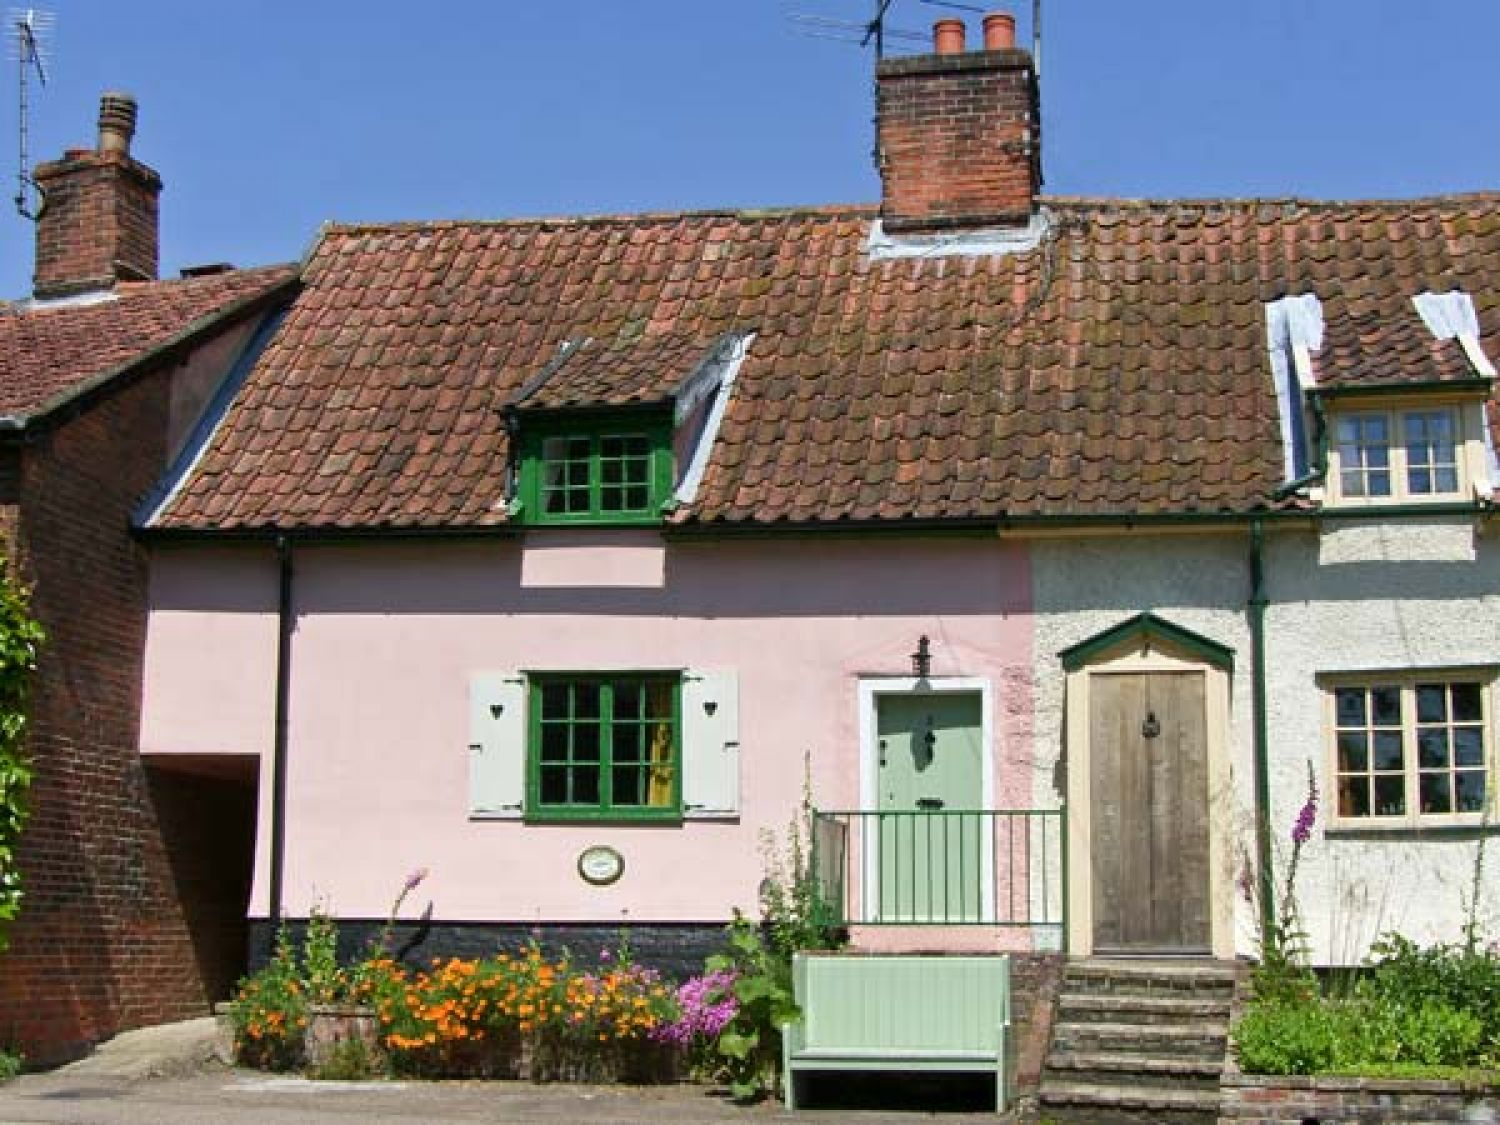 Feather Cottage, Peasehall, Suffolk | sykescottages.co.uk